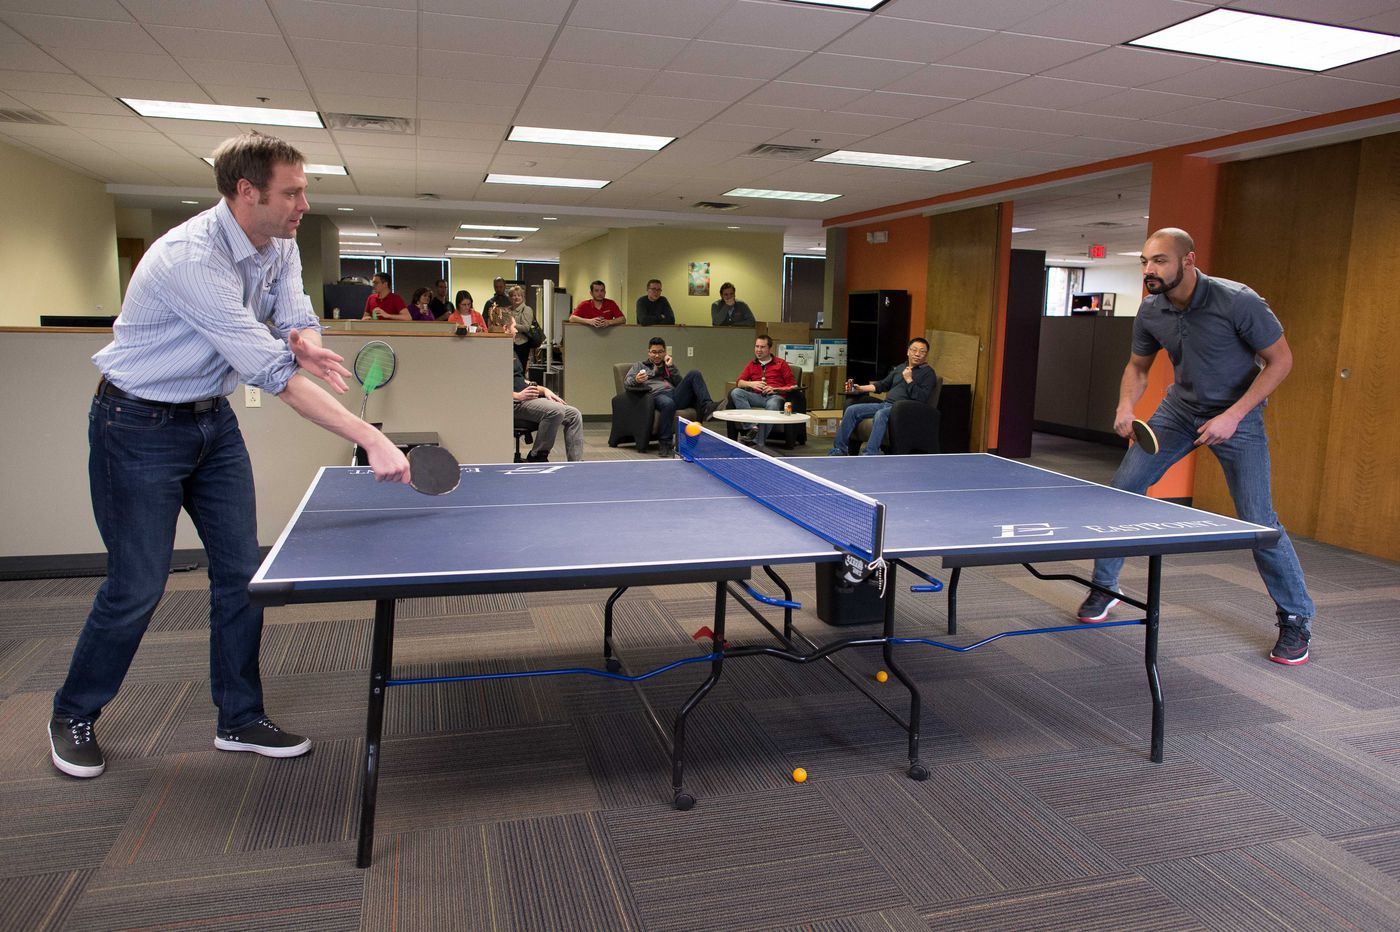 Paddle power: Employers find net profits in ping-pong